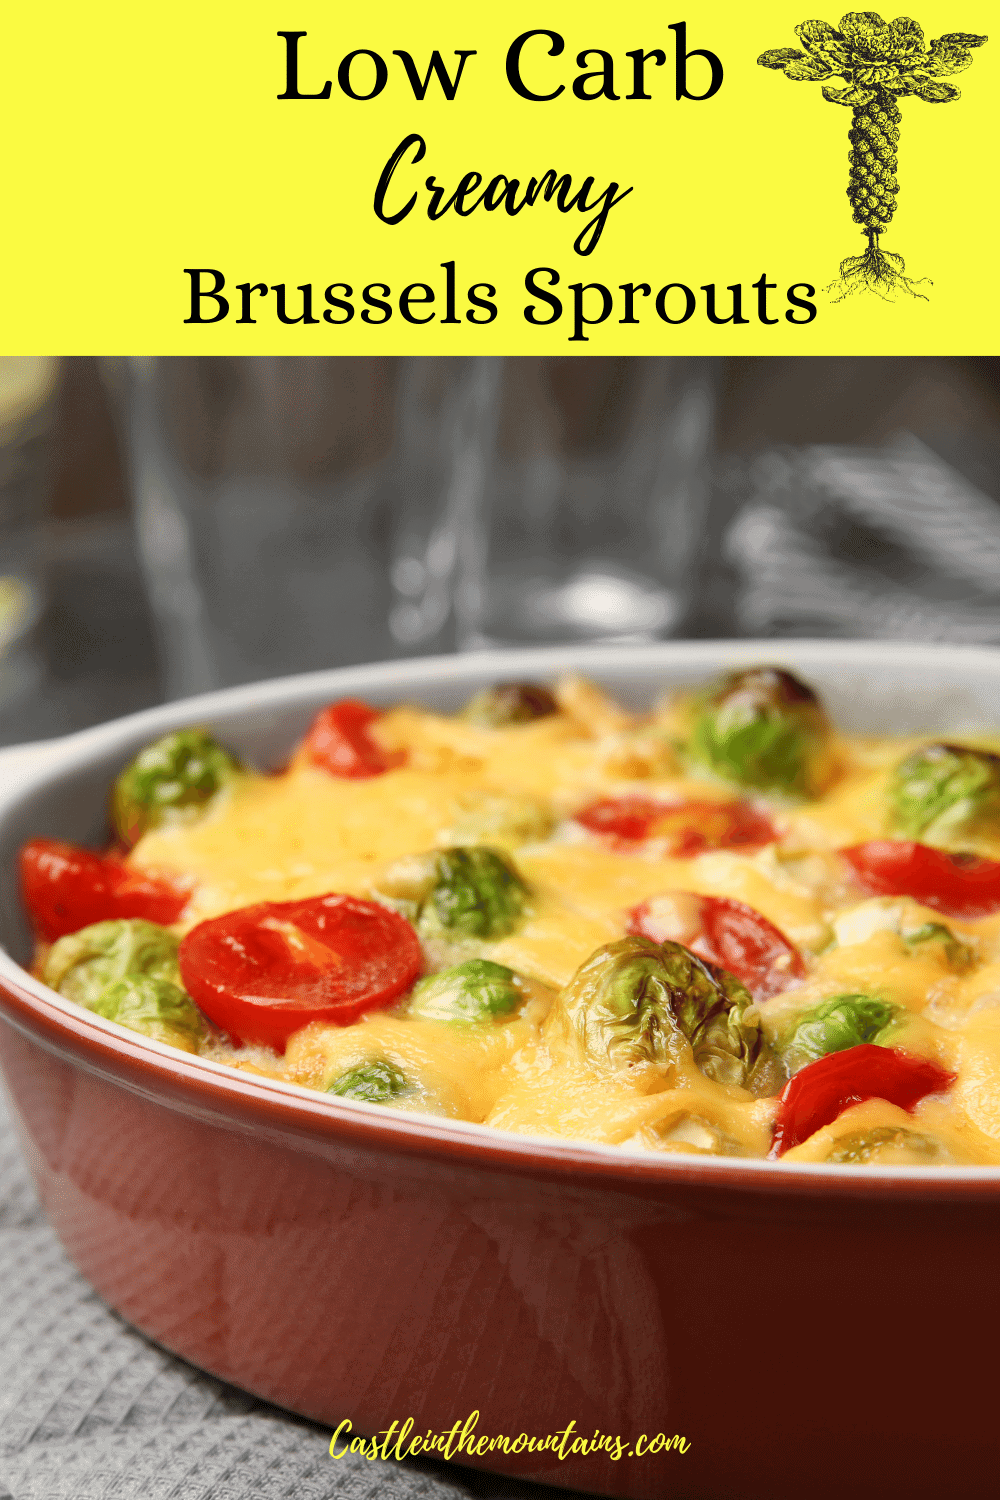 Creamed Brussels Sprouts - How to make amazing sprouts!